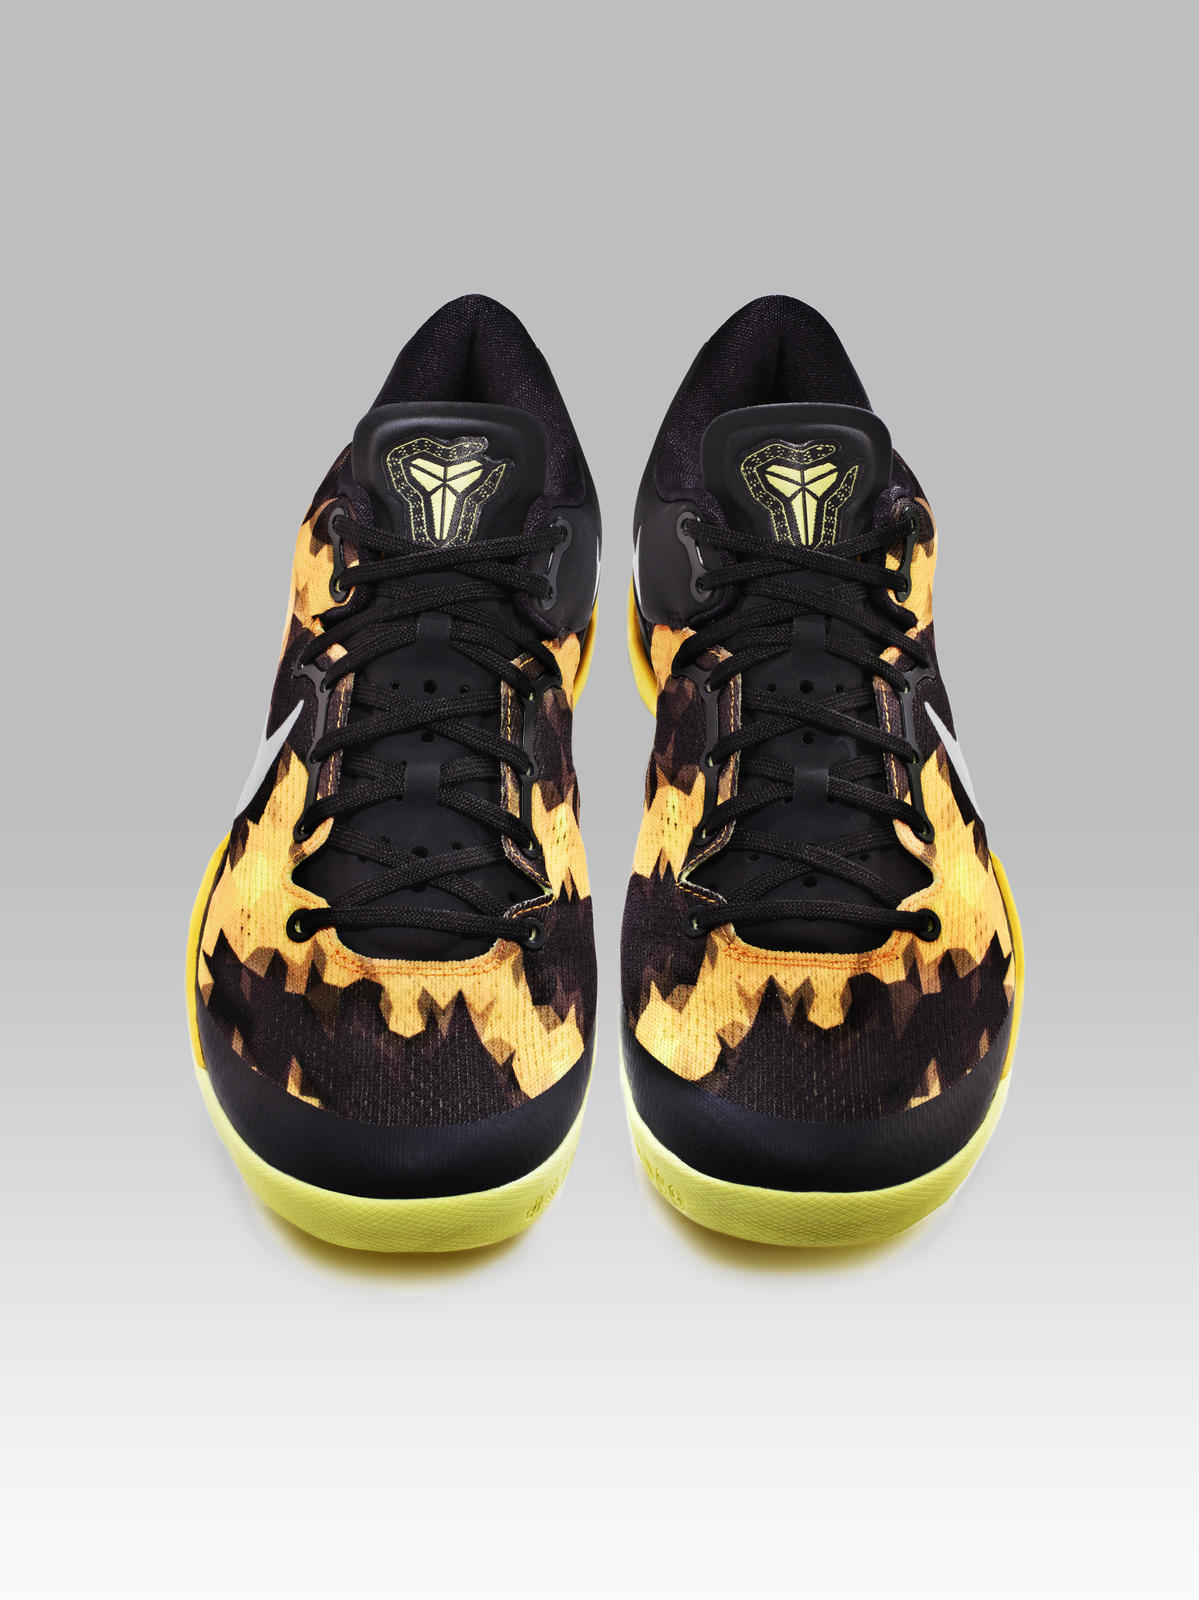 Kobe Running Shoes